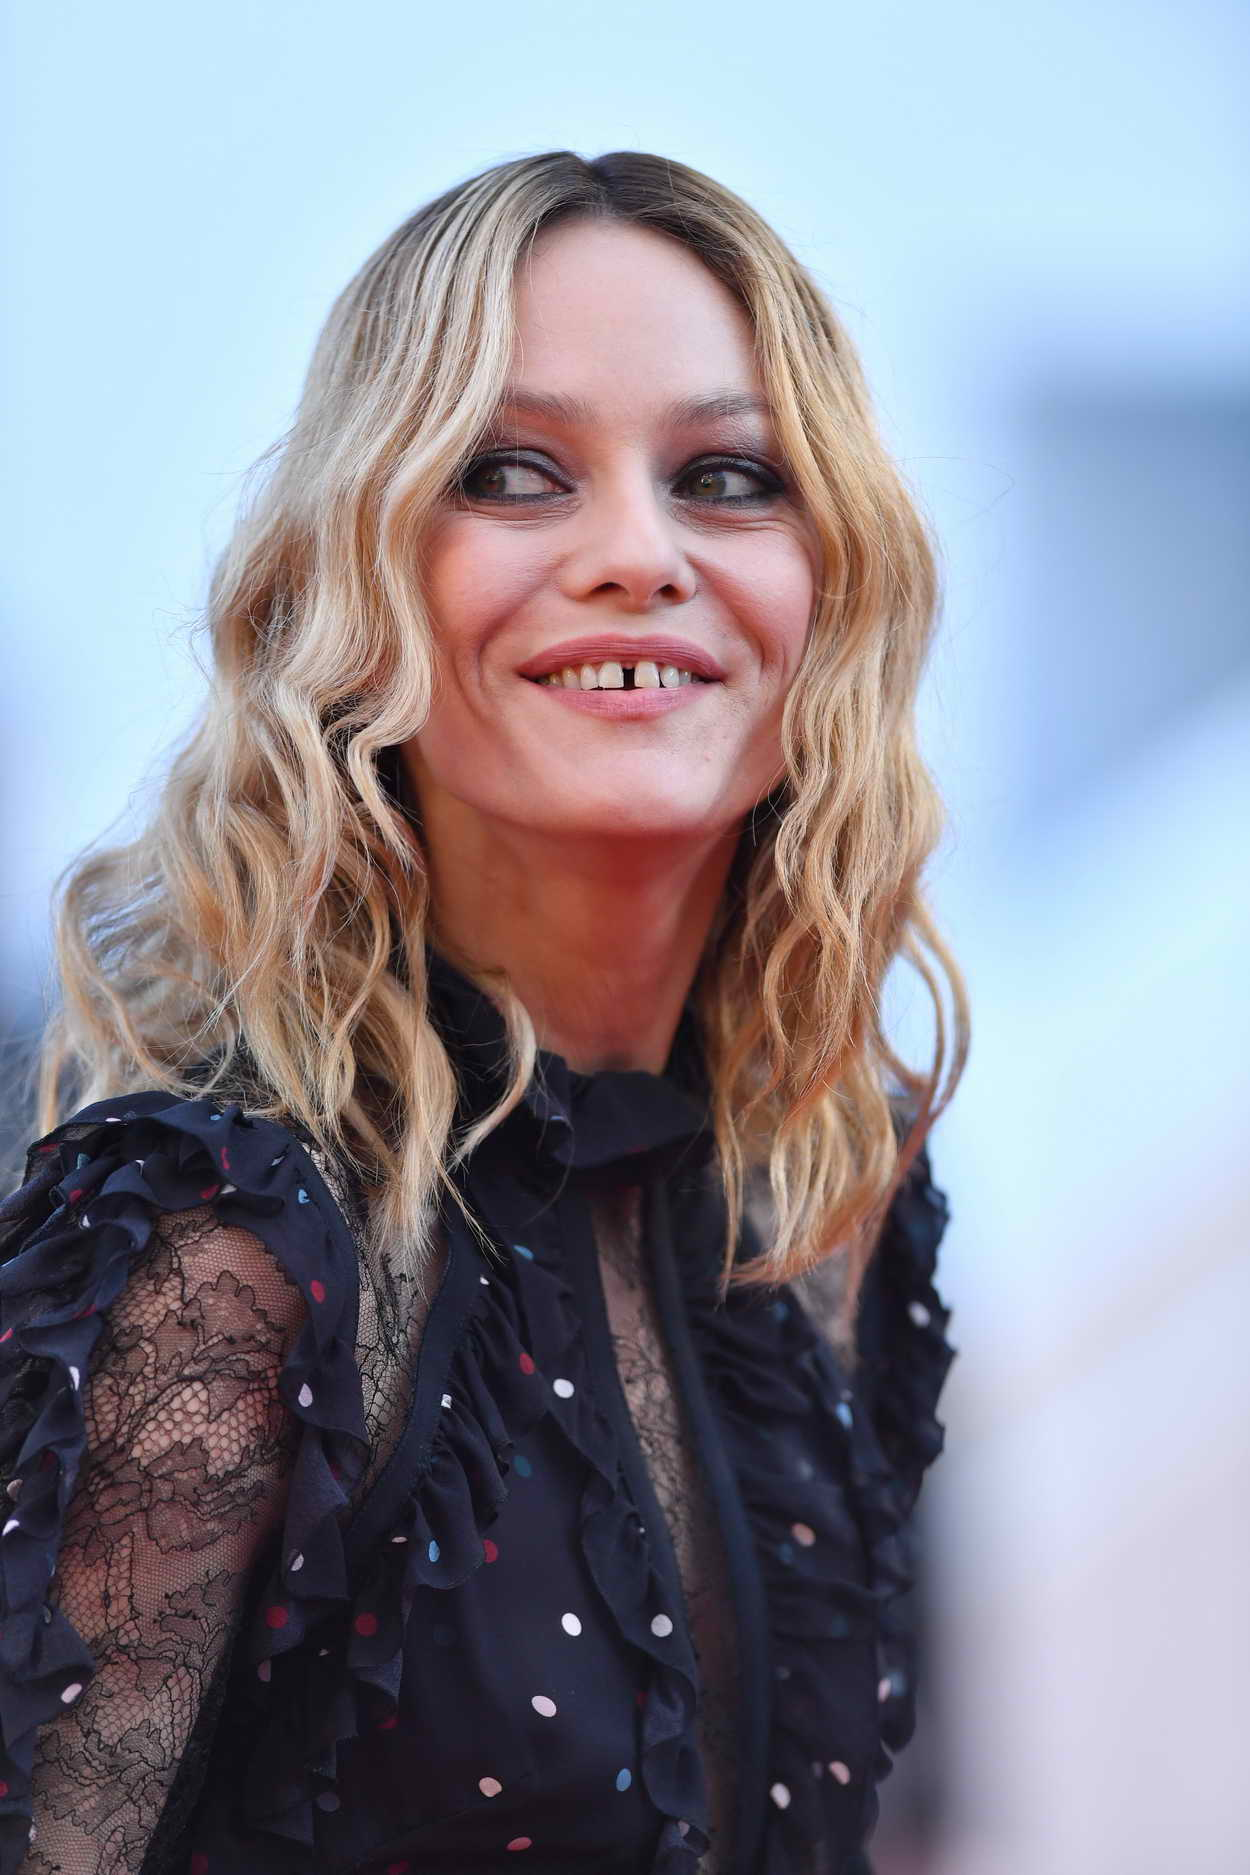 Image Result For Vanessa Paradis